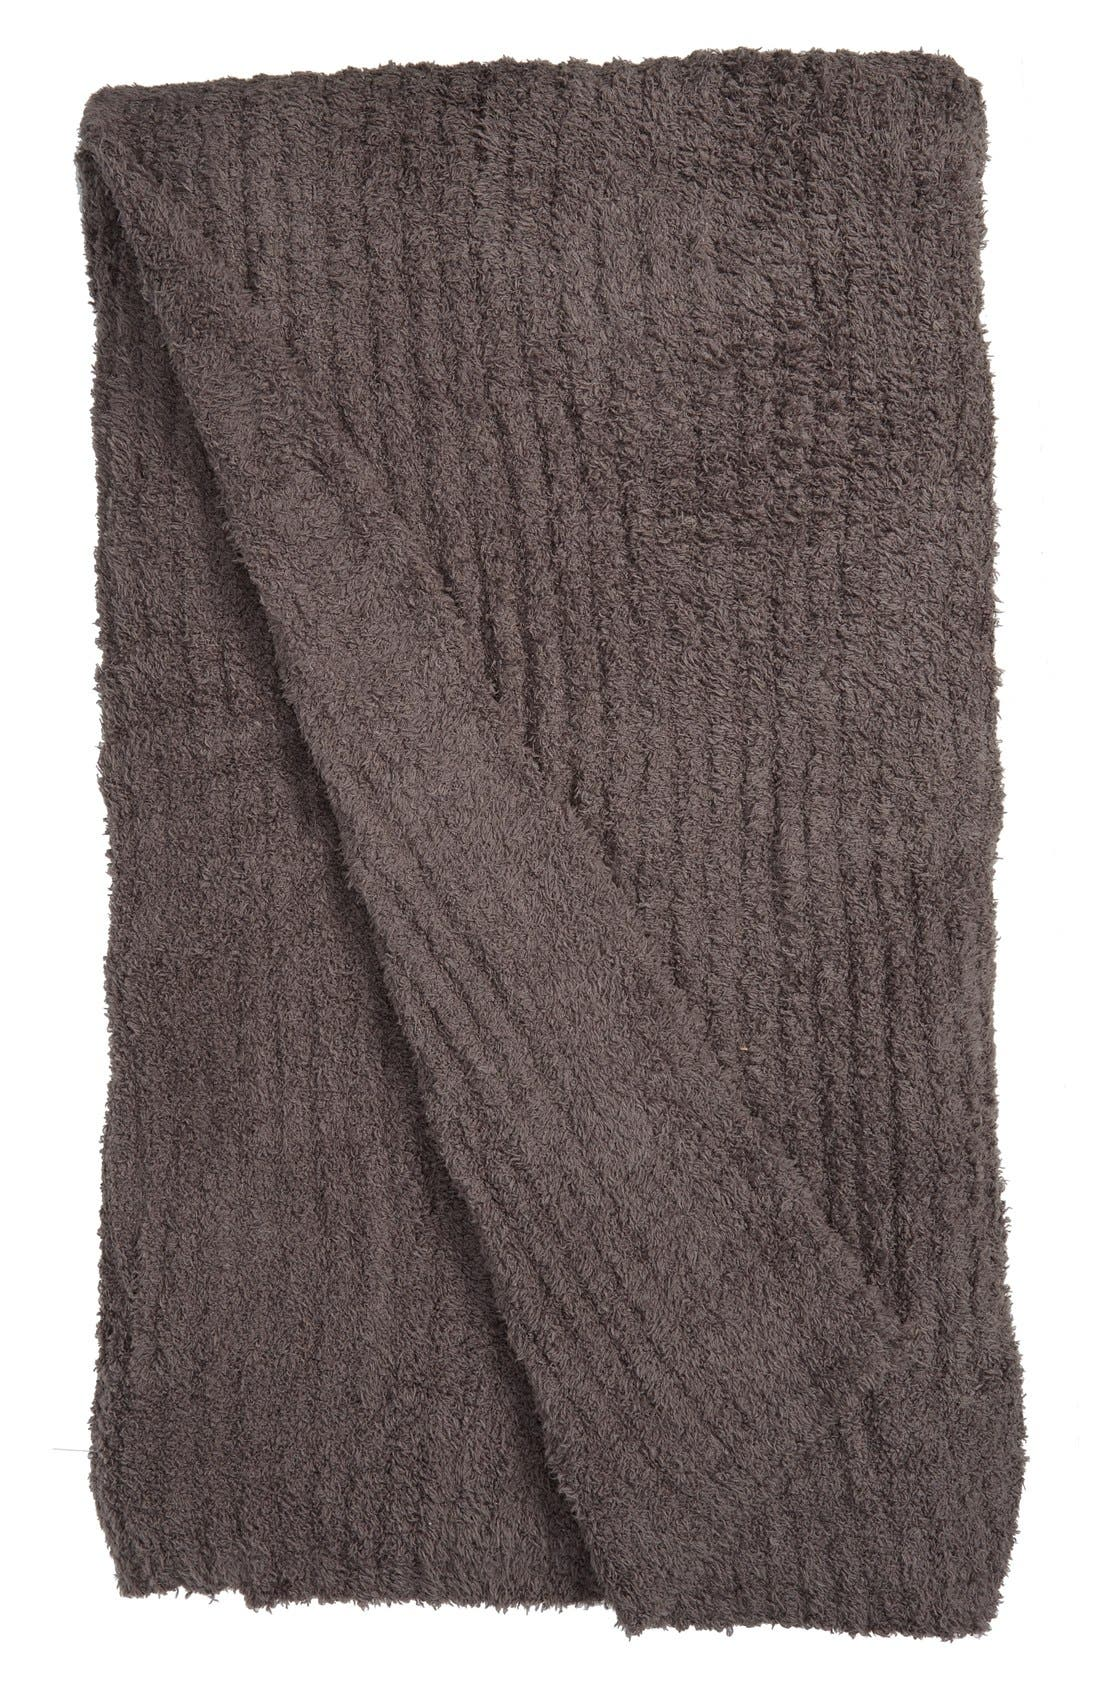 'CozyChic<sup>®</sup>' Ribbed Blanket,                         Main,                         color, Charcoal